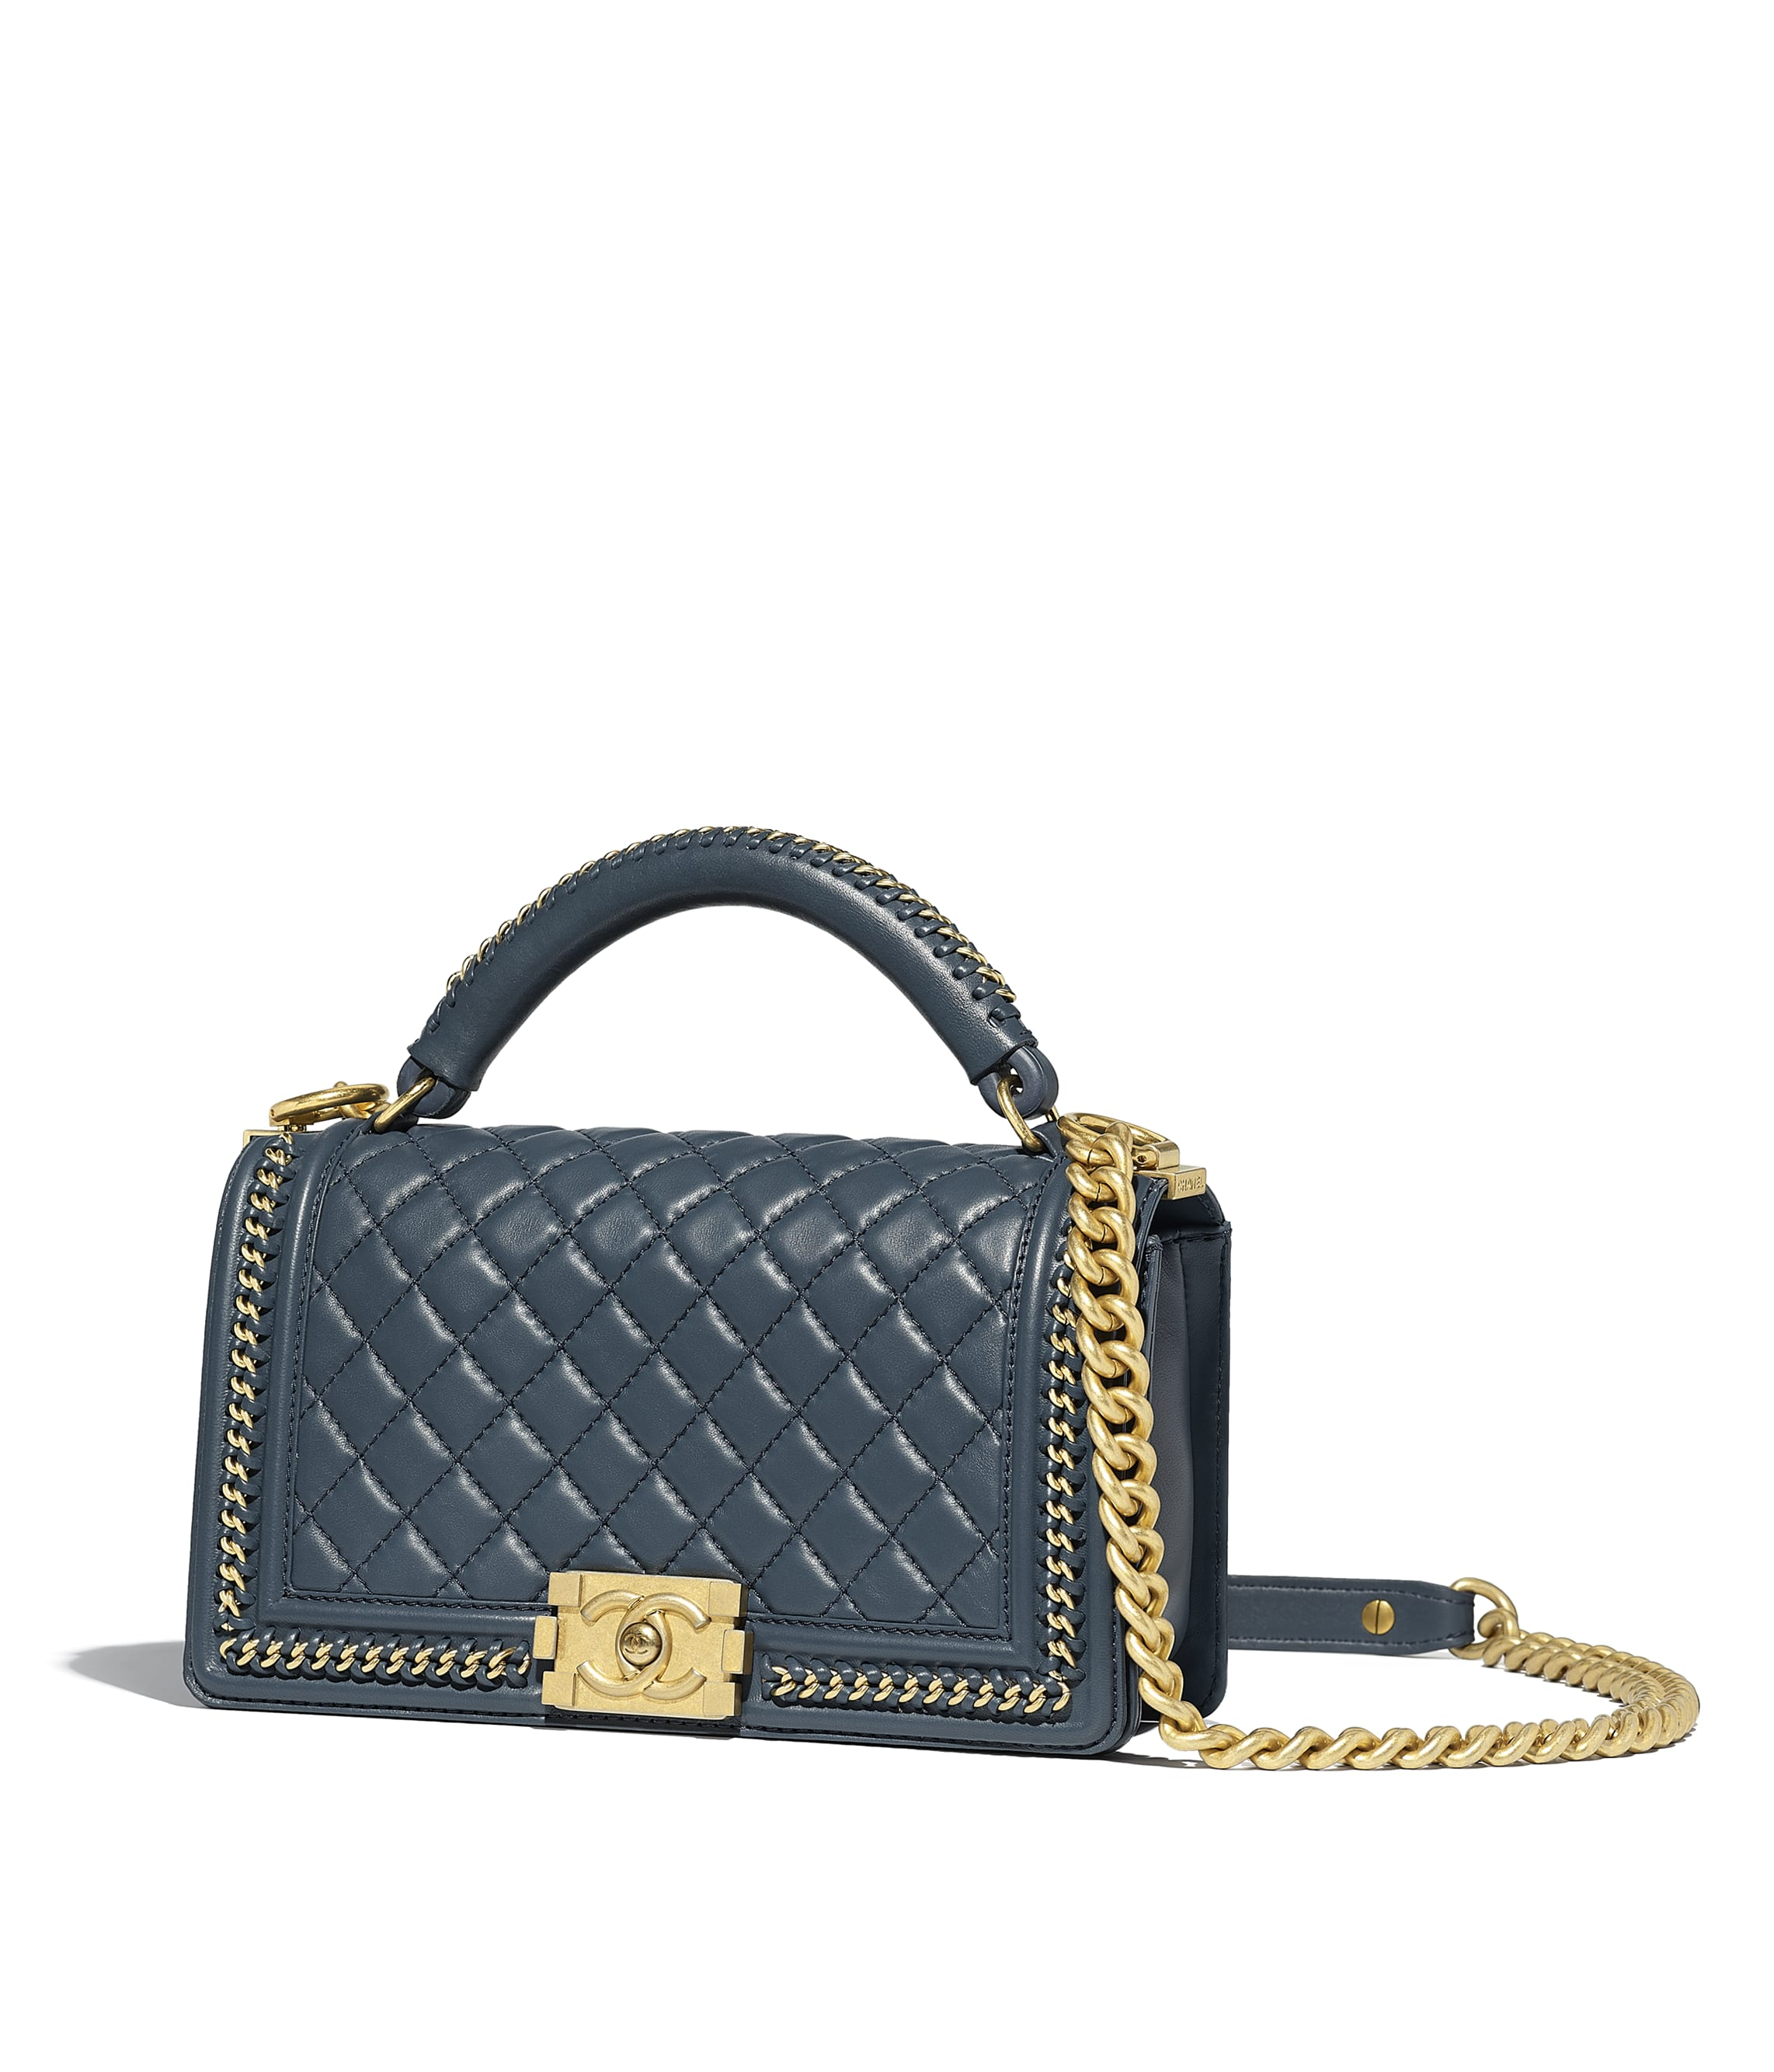 364bc76a1ad1d6 Chanel Bags for Sale - Yoogi's Closet